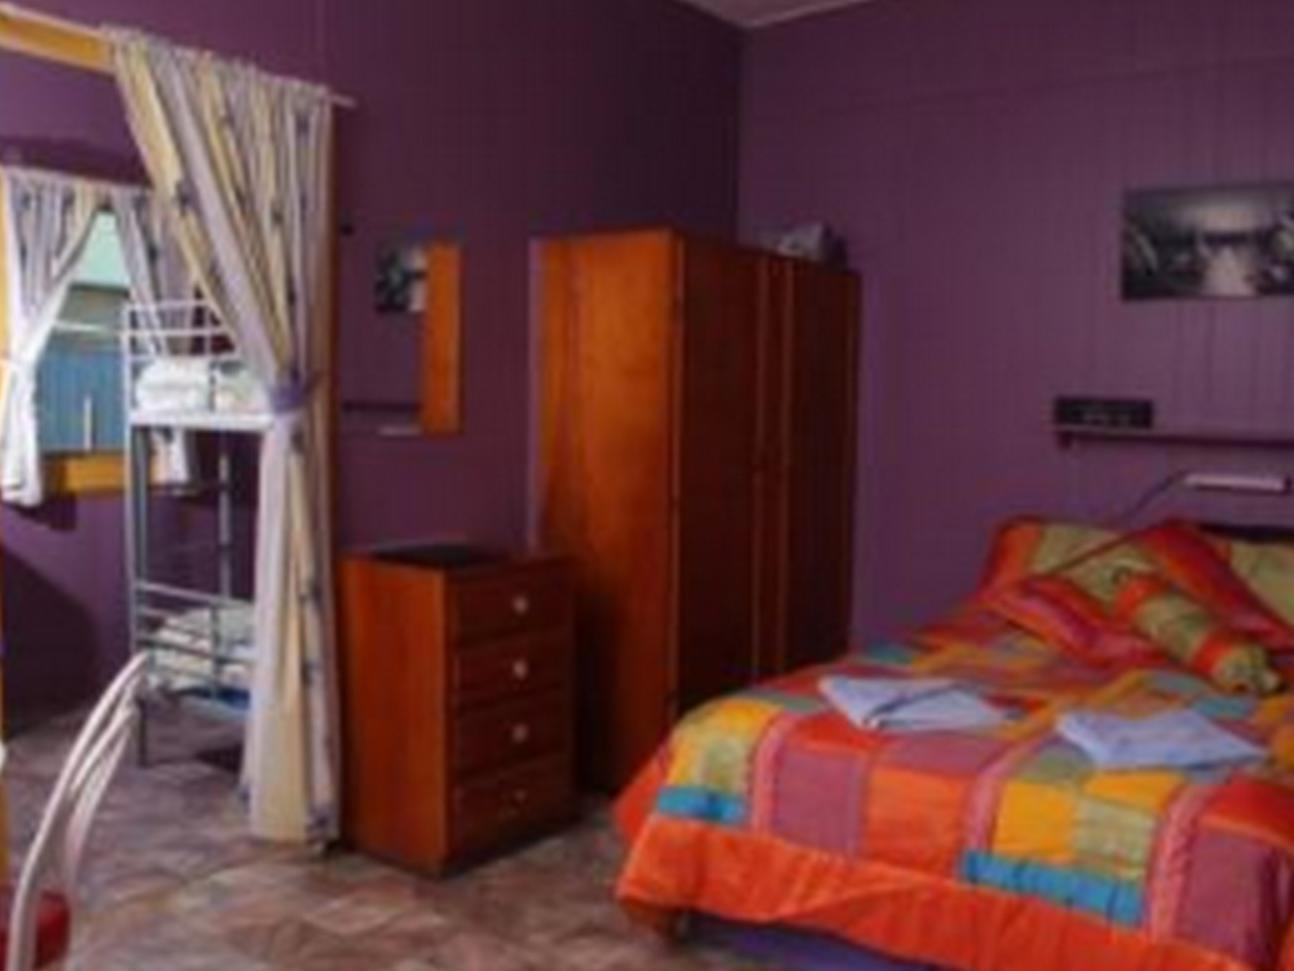 2 soverom - min. 2 netter (2 Bedroom - Min. 2 nights)